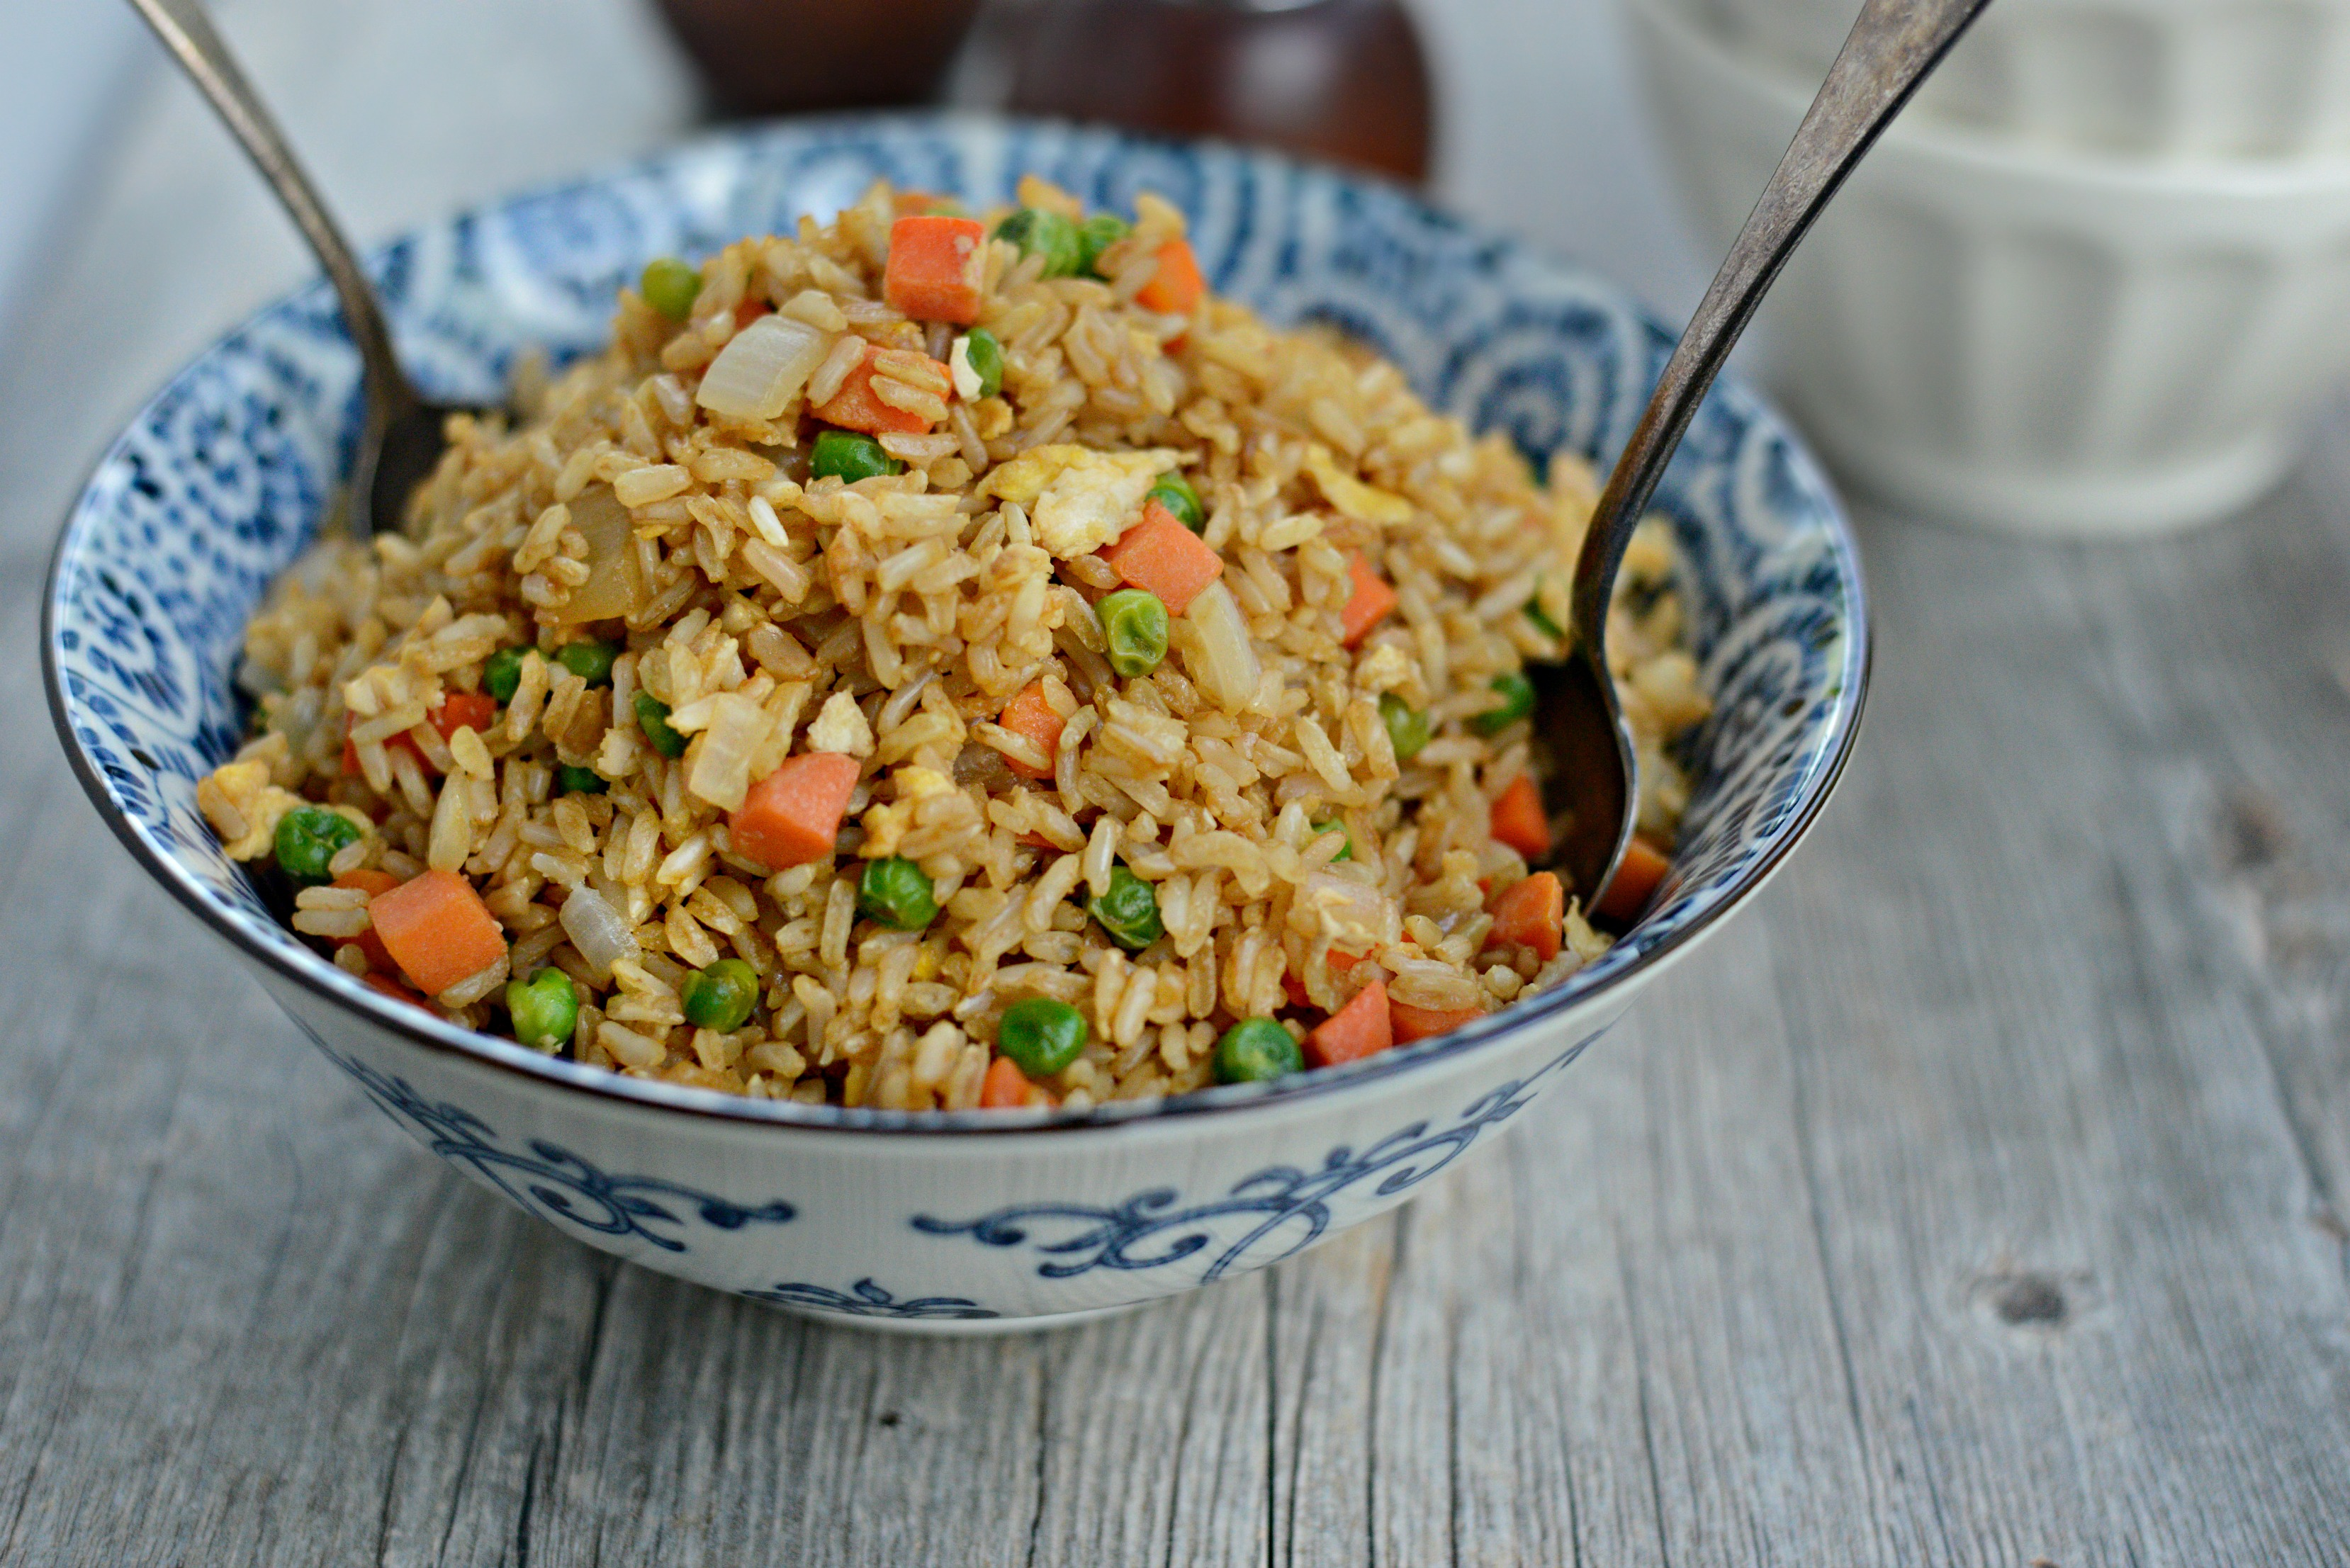 Picturesque Egg Simply Scratch Steak Fried Rice Food Network Steak Fried Rice Ugly Delicious Simply Scratch Easy Vegetable Fried Brown Rice nice food Steak Fried Rice